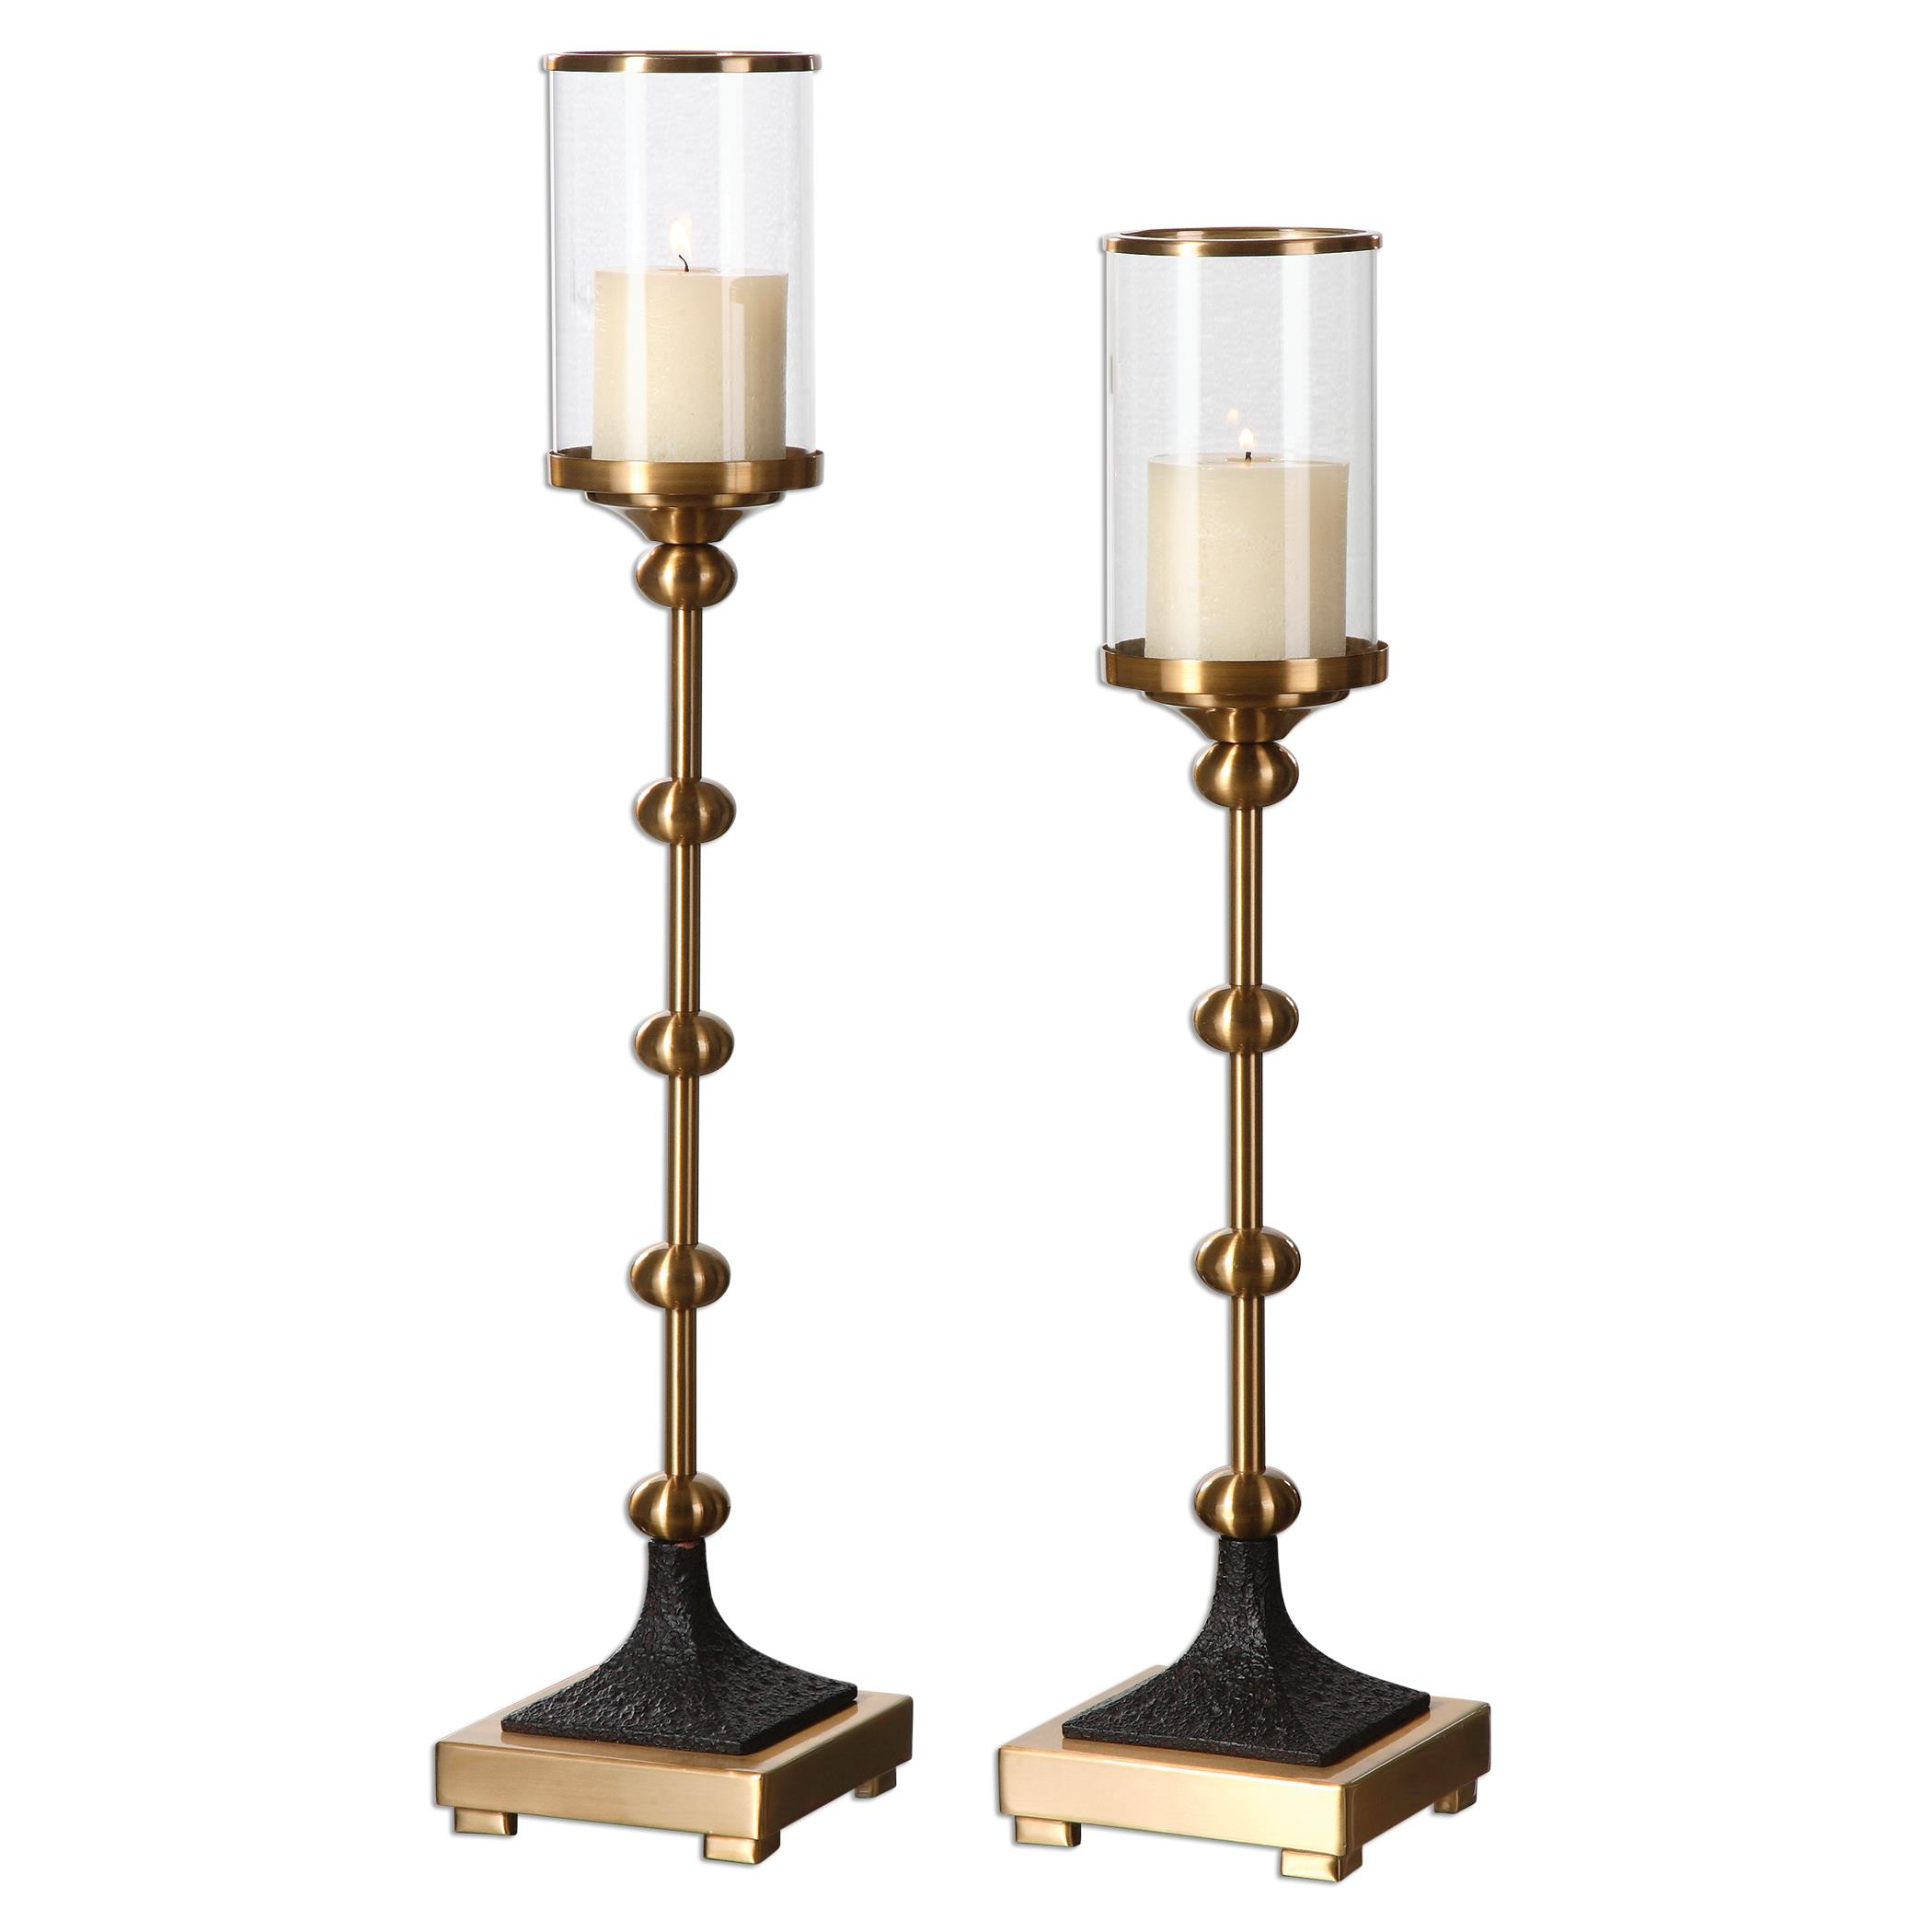 Uttermost Accessories Santona Brass Candleholders, S/2 - Item Number: 20001